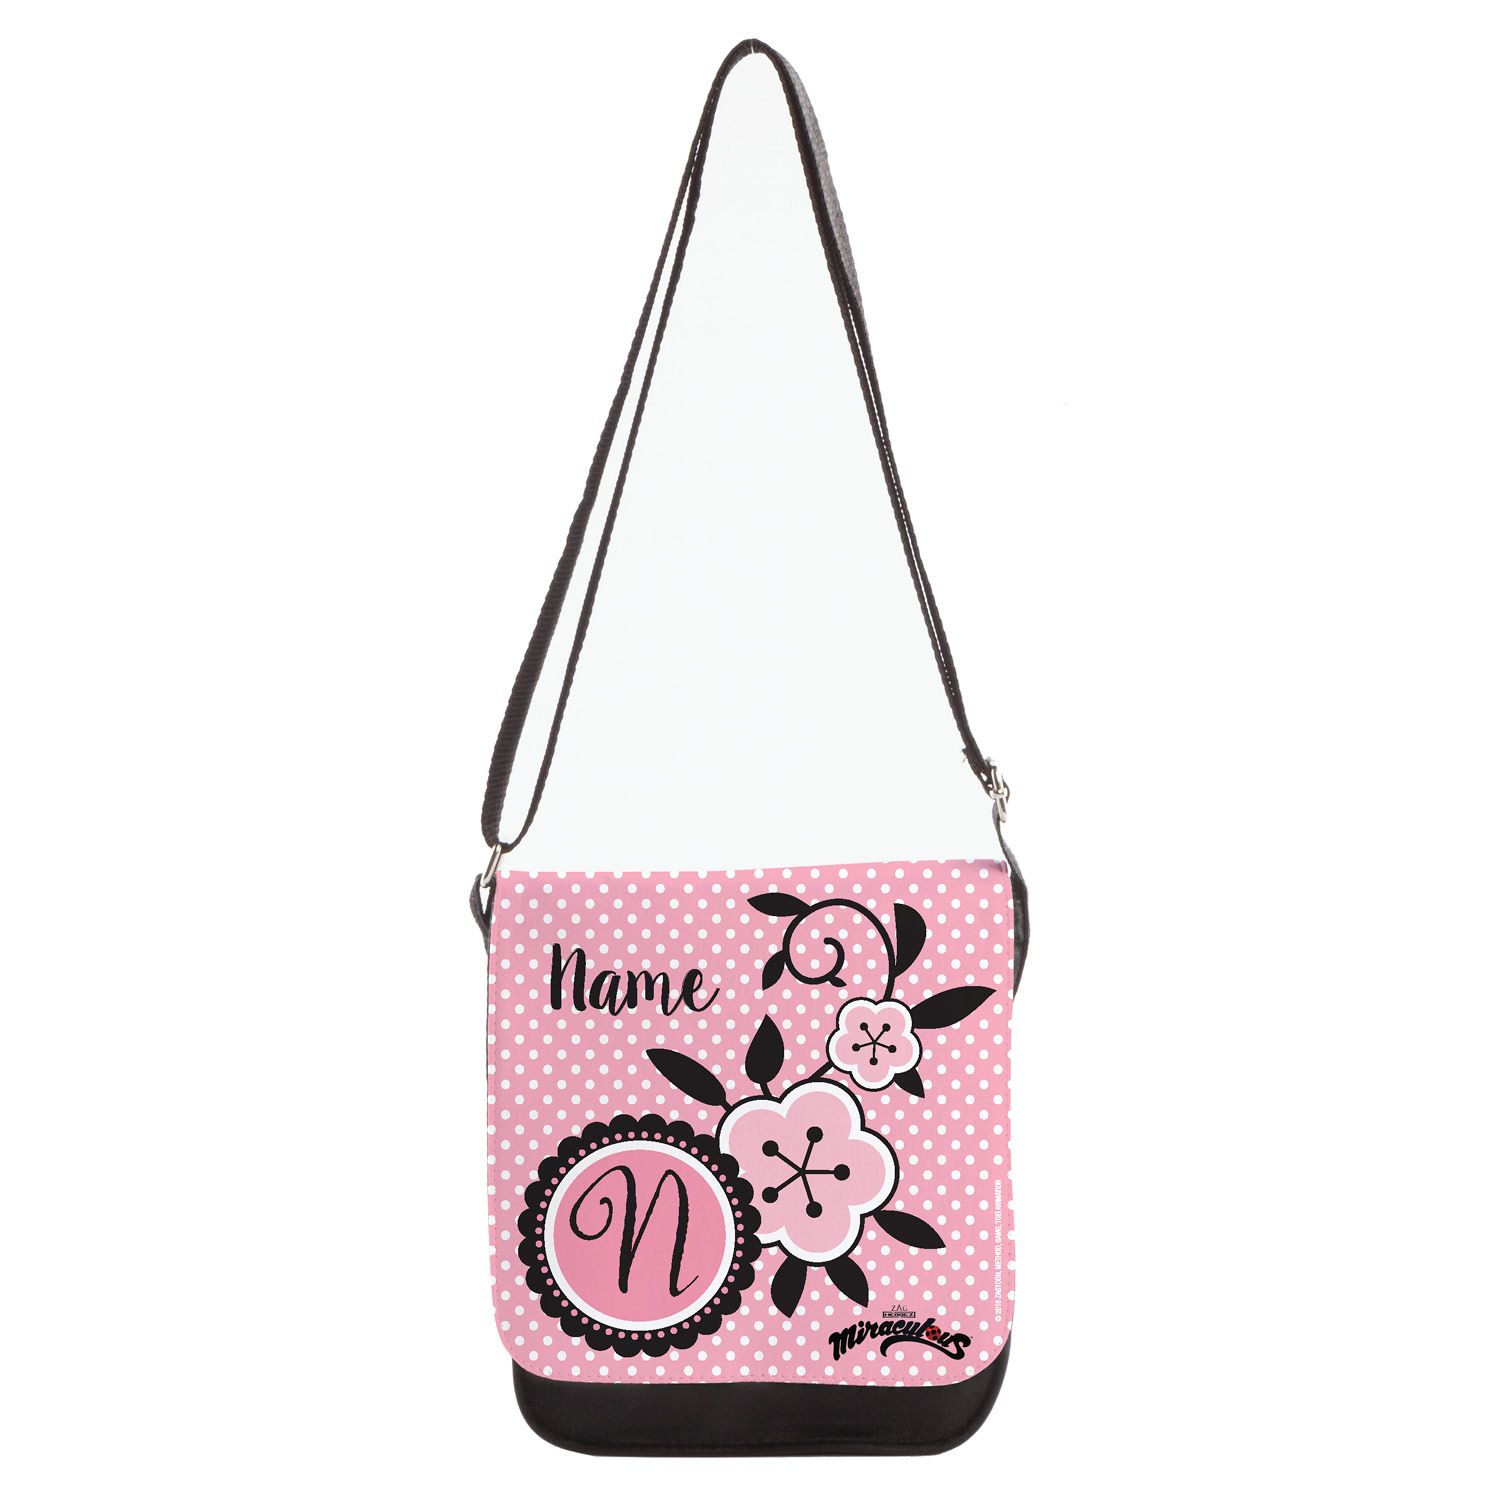 Personalized Miraculous Marinette Purse | Tv's Toy Box ...